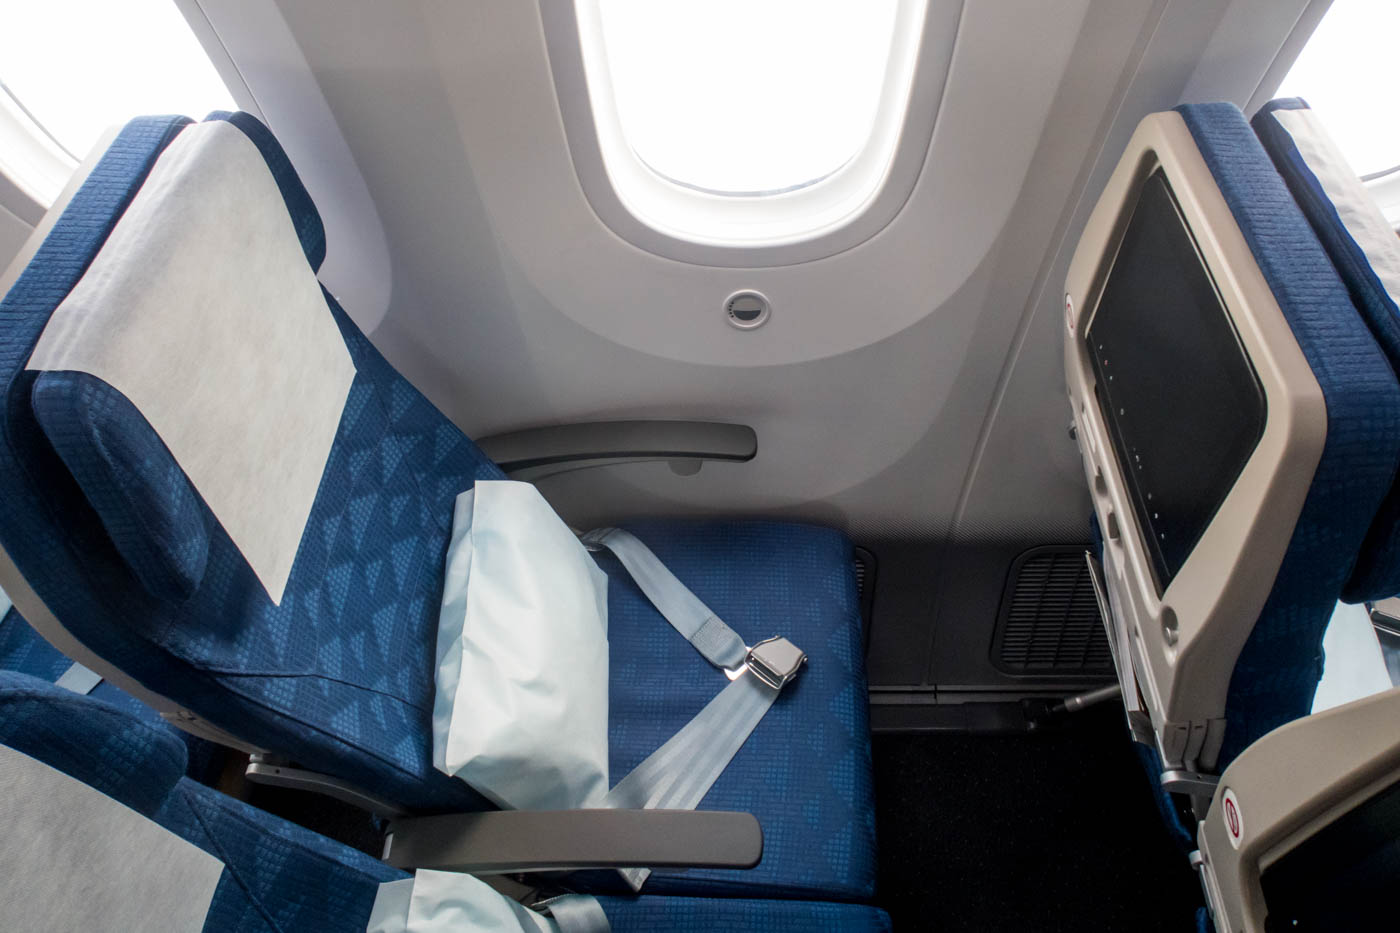 Korean Air Boeing 787-9 Economy Class Seat